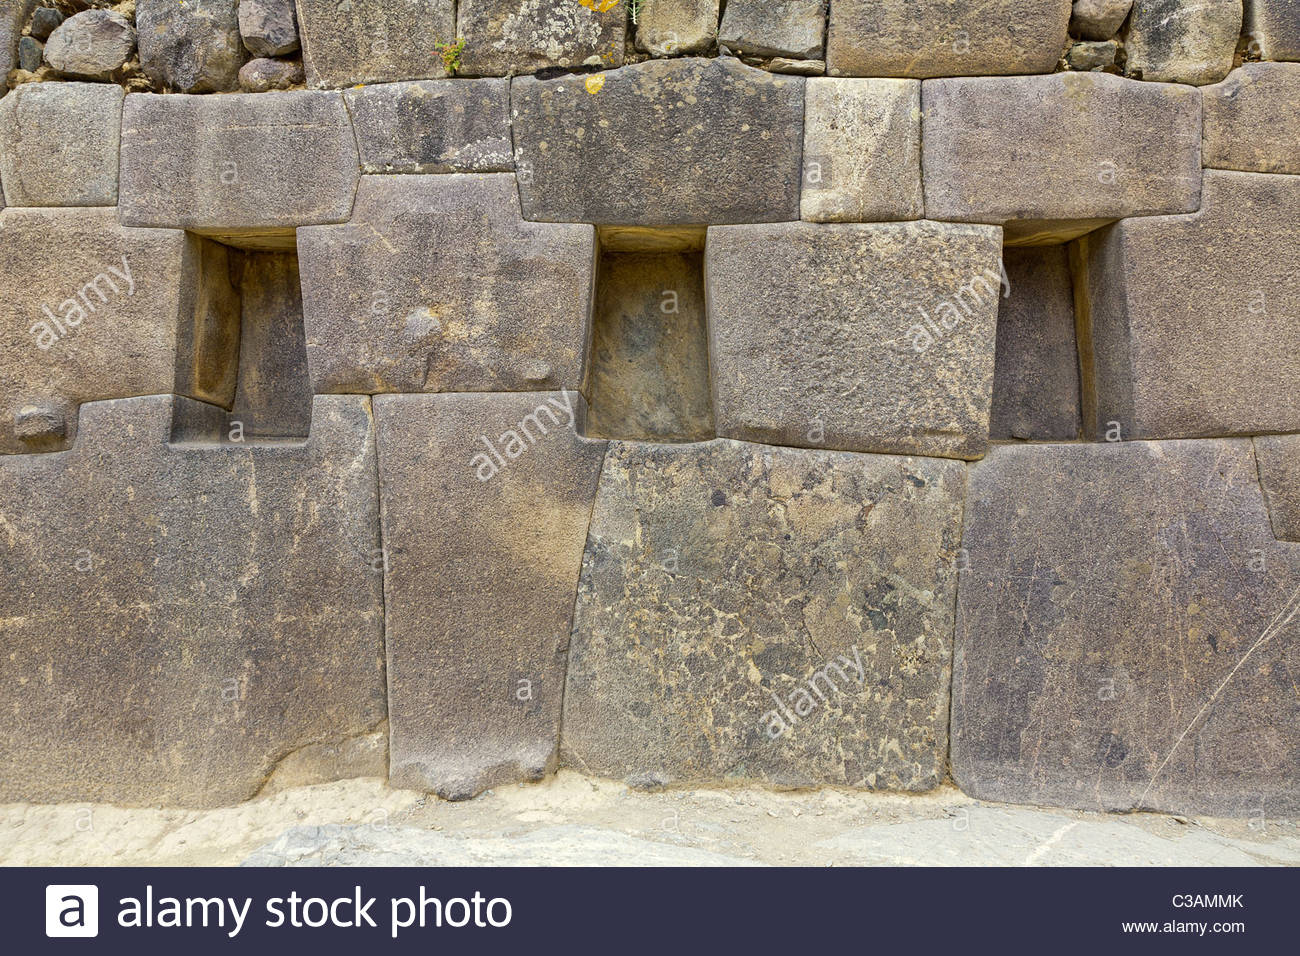 15th century Inca stonework with trapezoidal niches at Ollantaytambo ruins. Ollantaytambo, Peru. - Stock Image